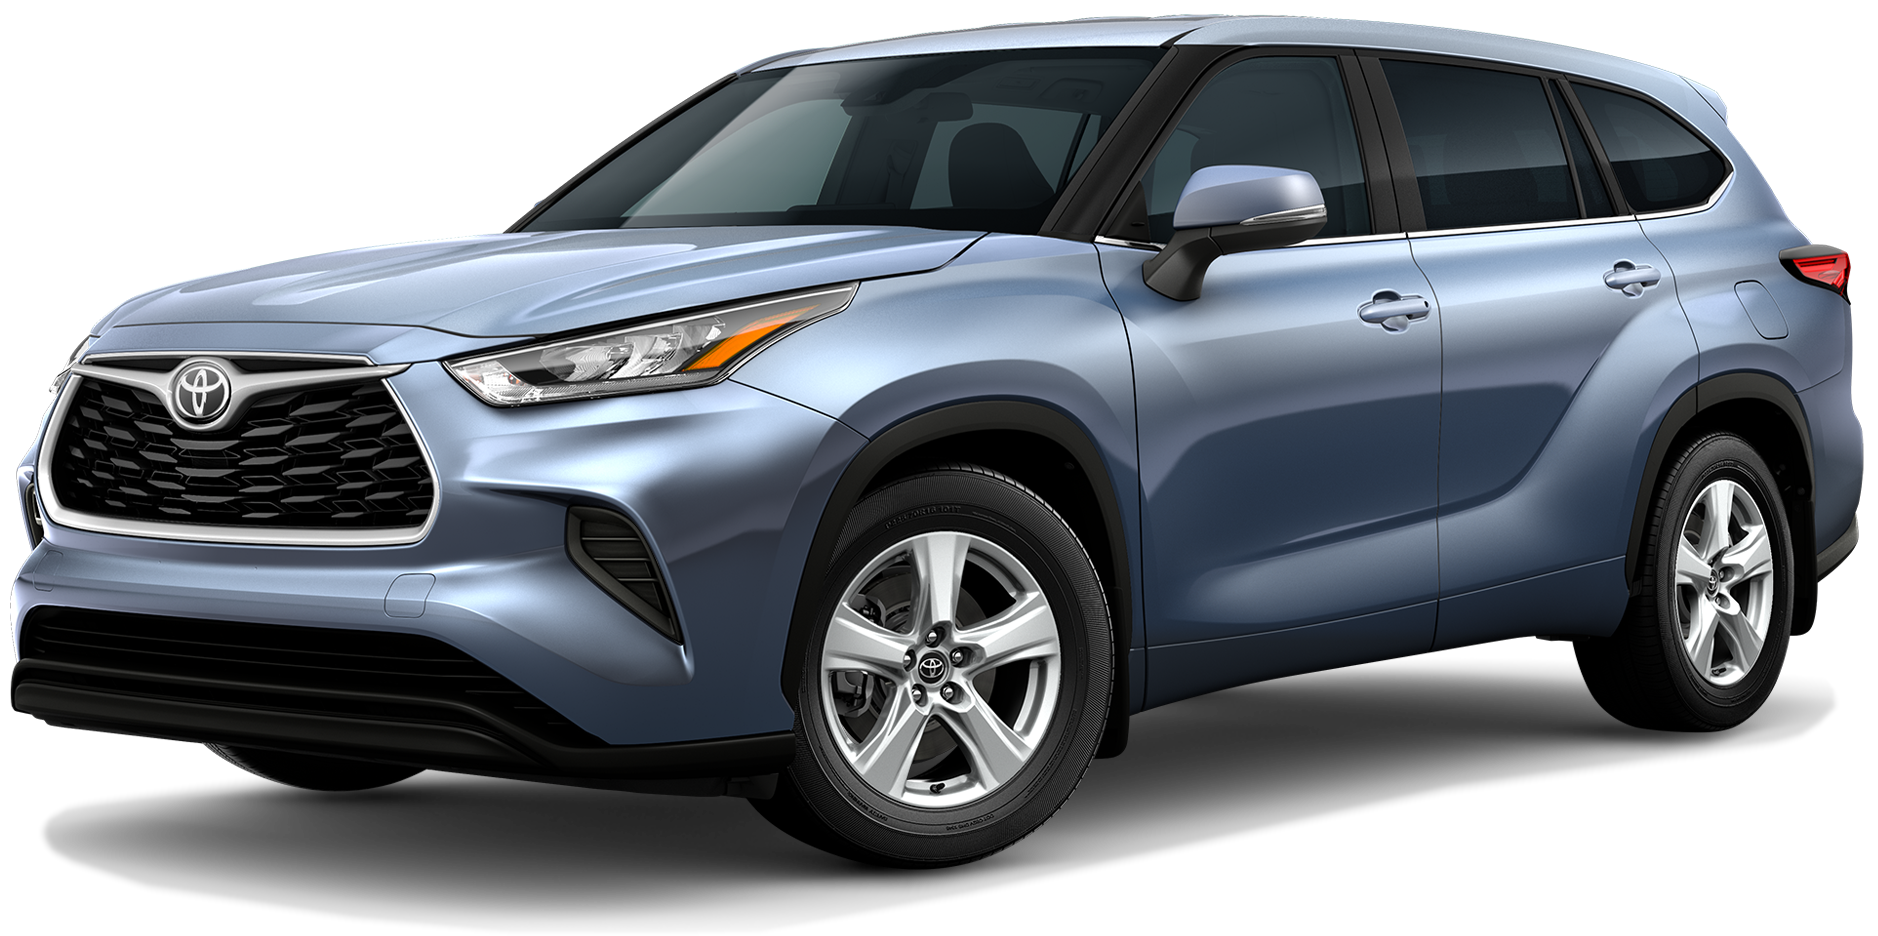 2021 toyota highlander incentives, specials & offers in